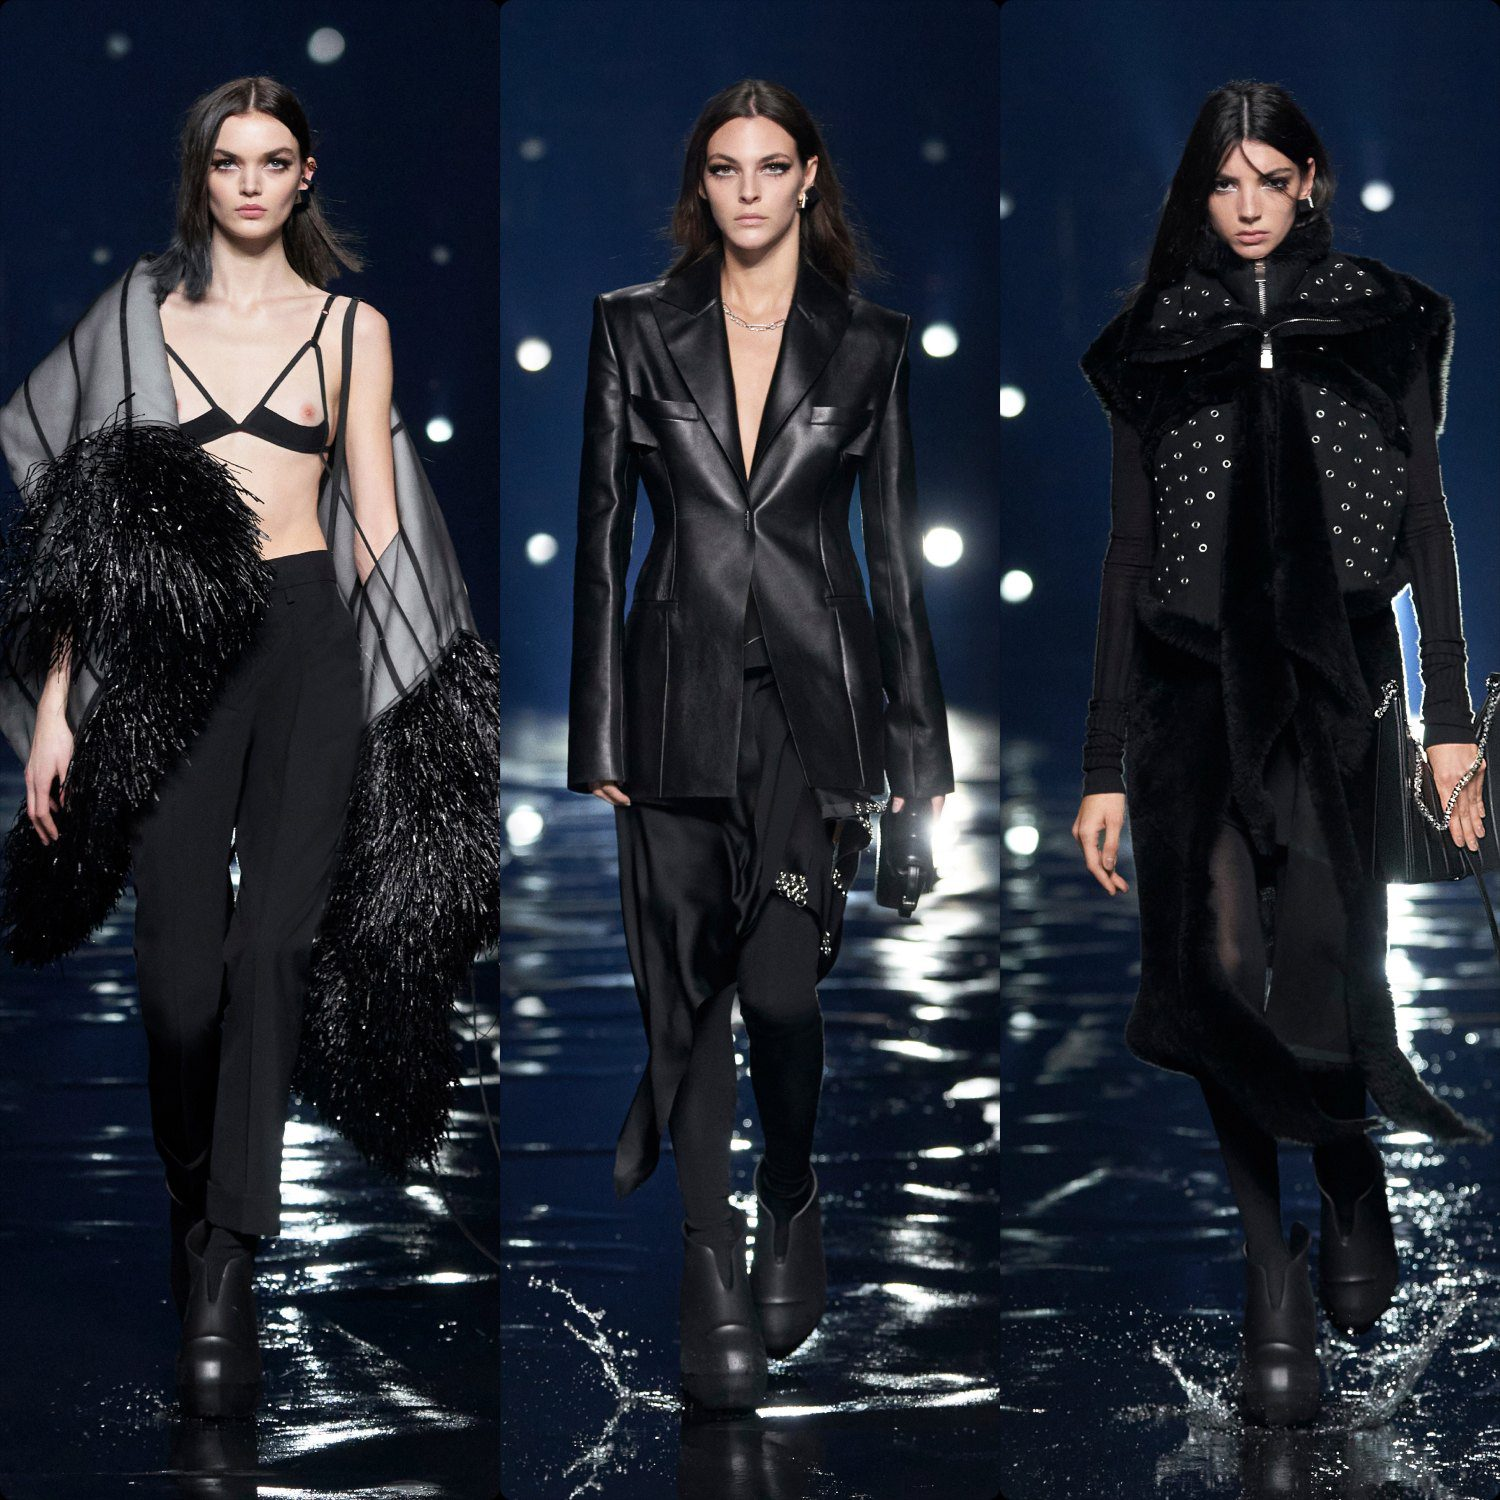 Givenchy Fall Winter 2021-2022 Paris by RUNWAY MAGAZINE